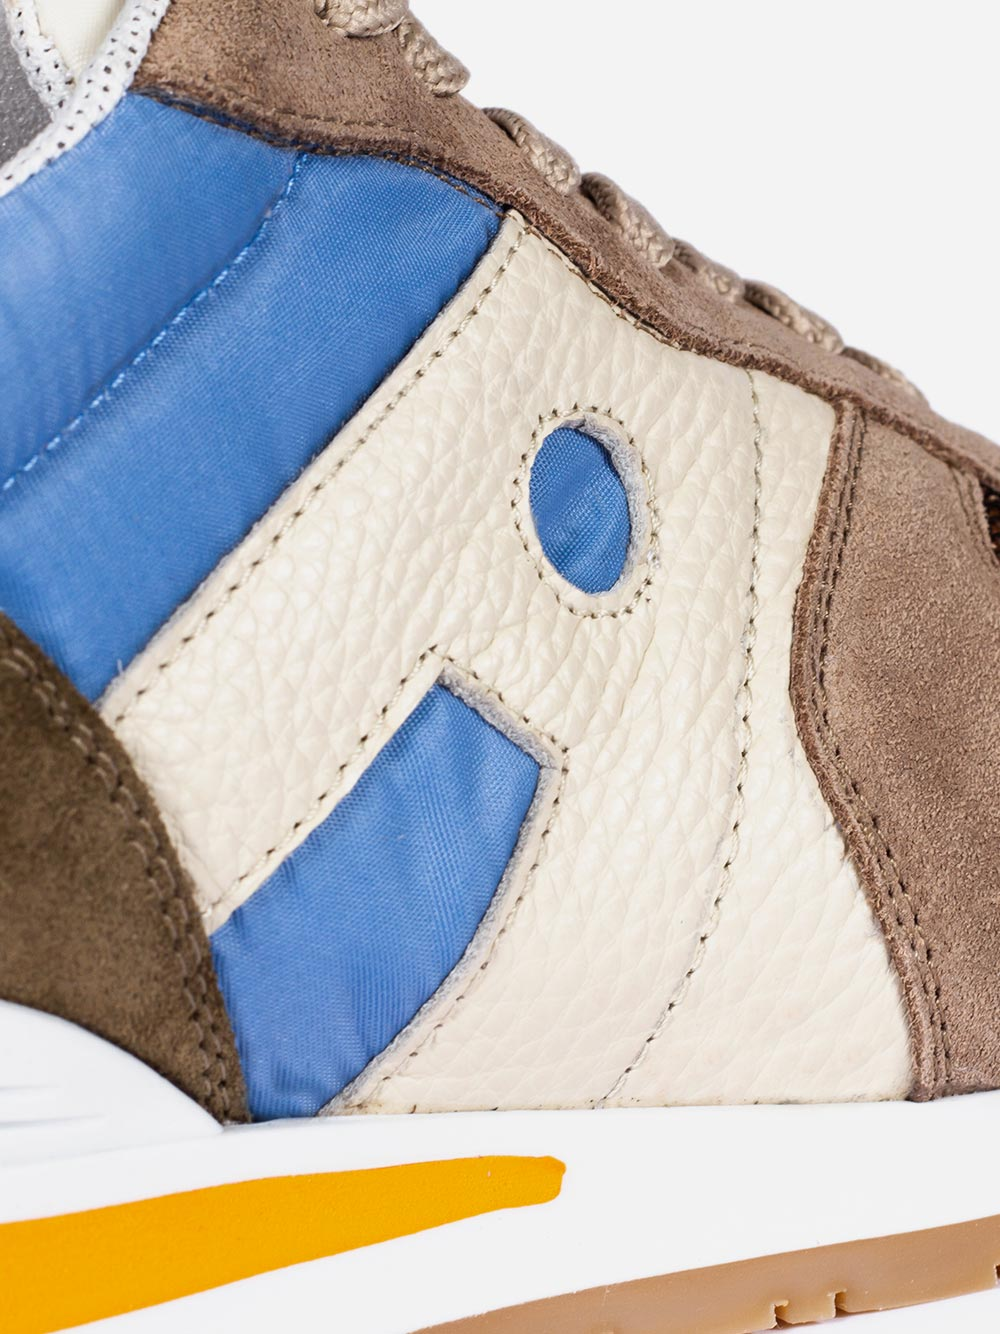 Bege and blue sneakers